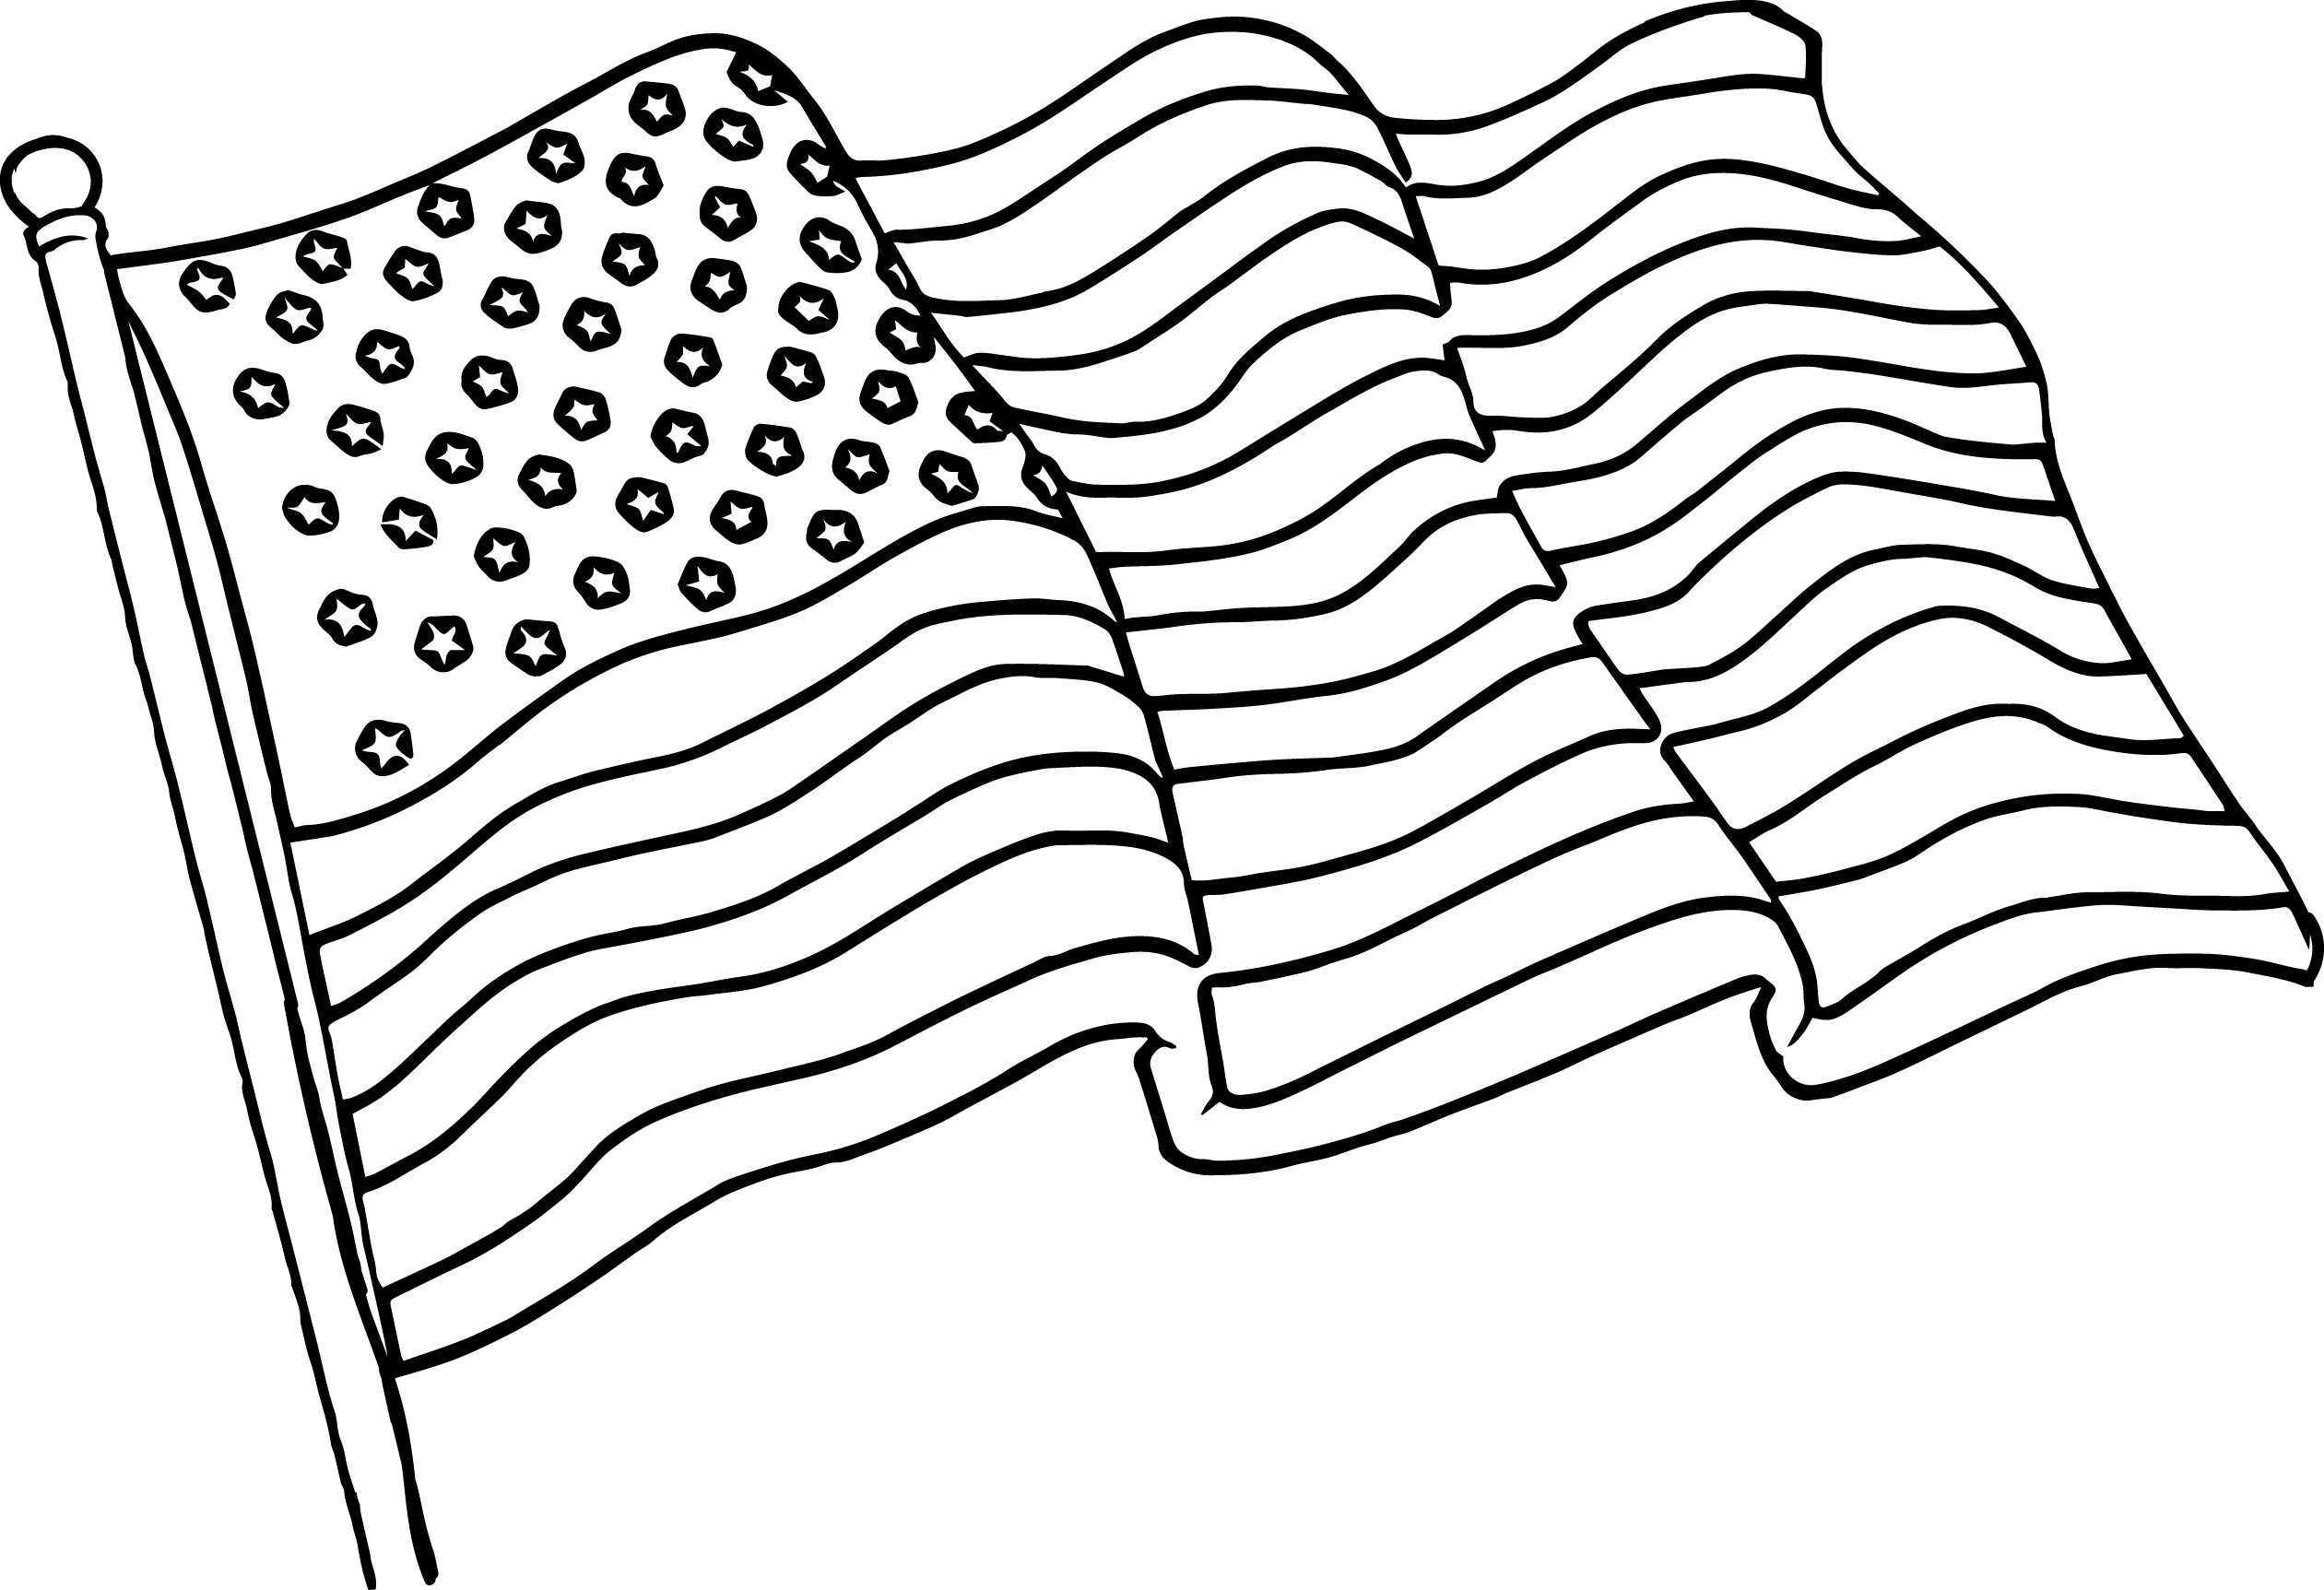 american flag coloring pages american flag coloring pages best coloring pages for kids american flag coloring pages